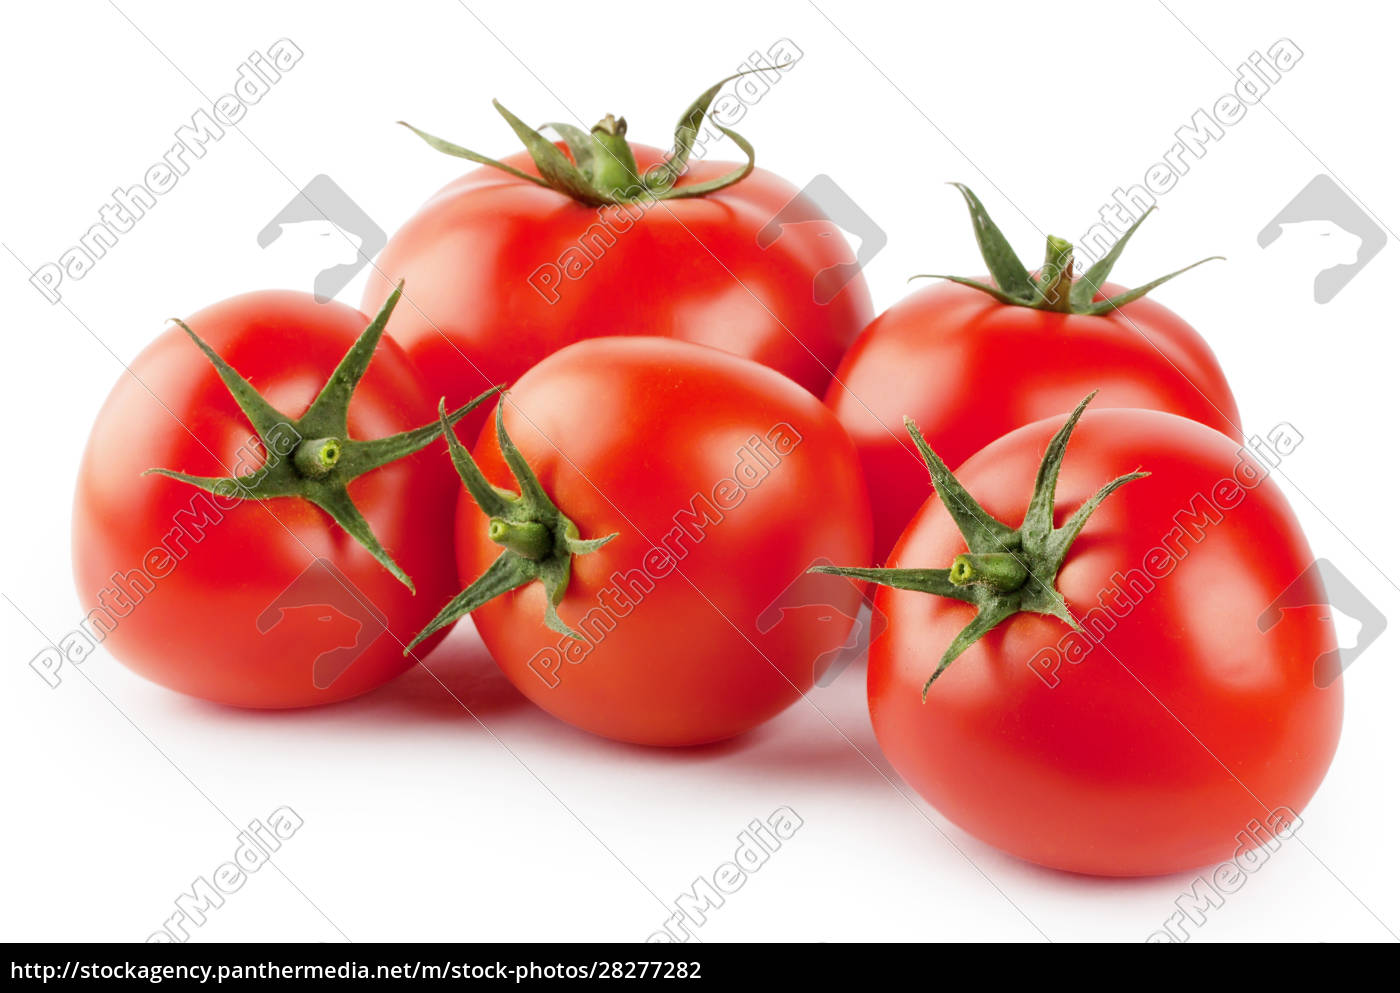 five, ripe, red, tomatoes - 28277282